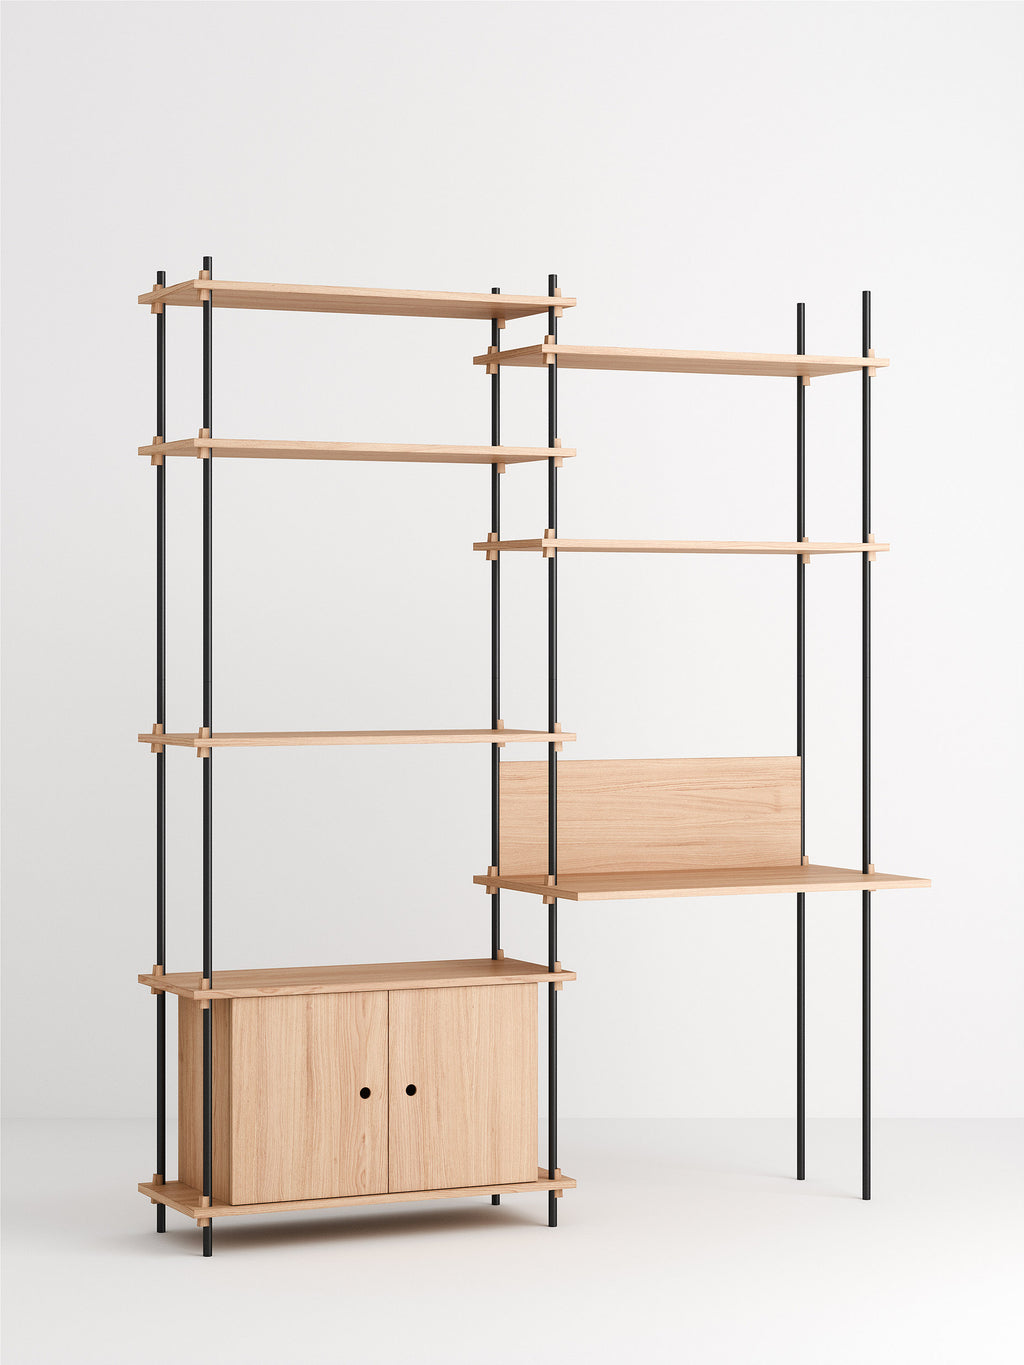 Shelving System - Tall workstation